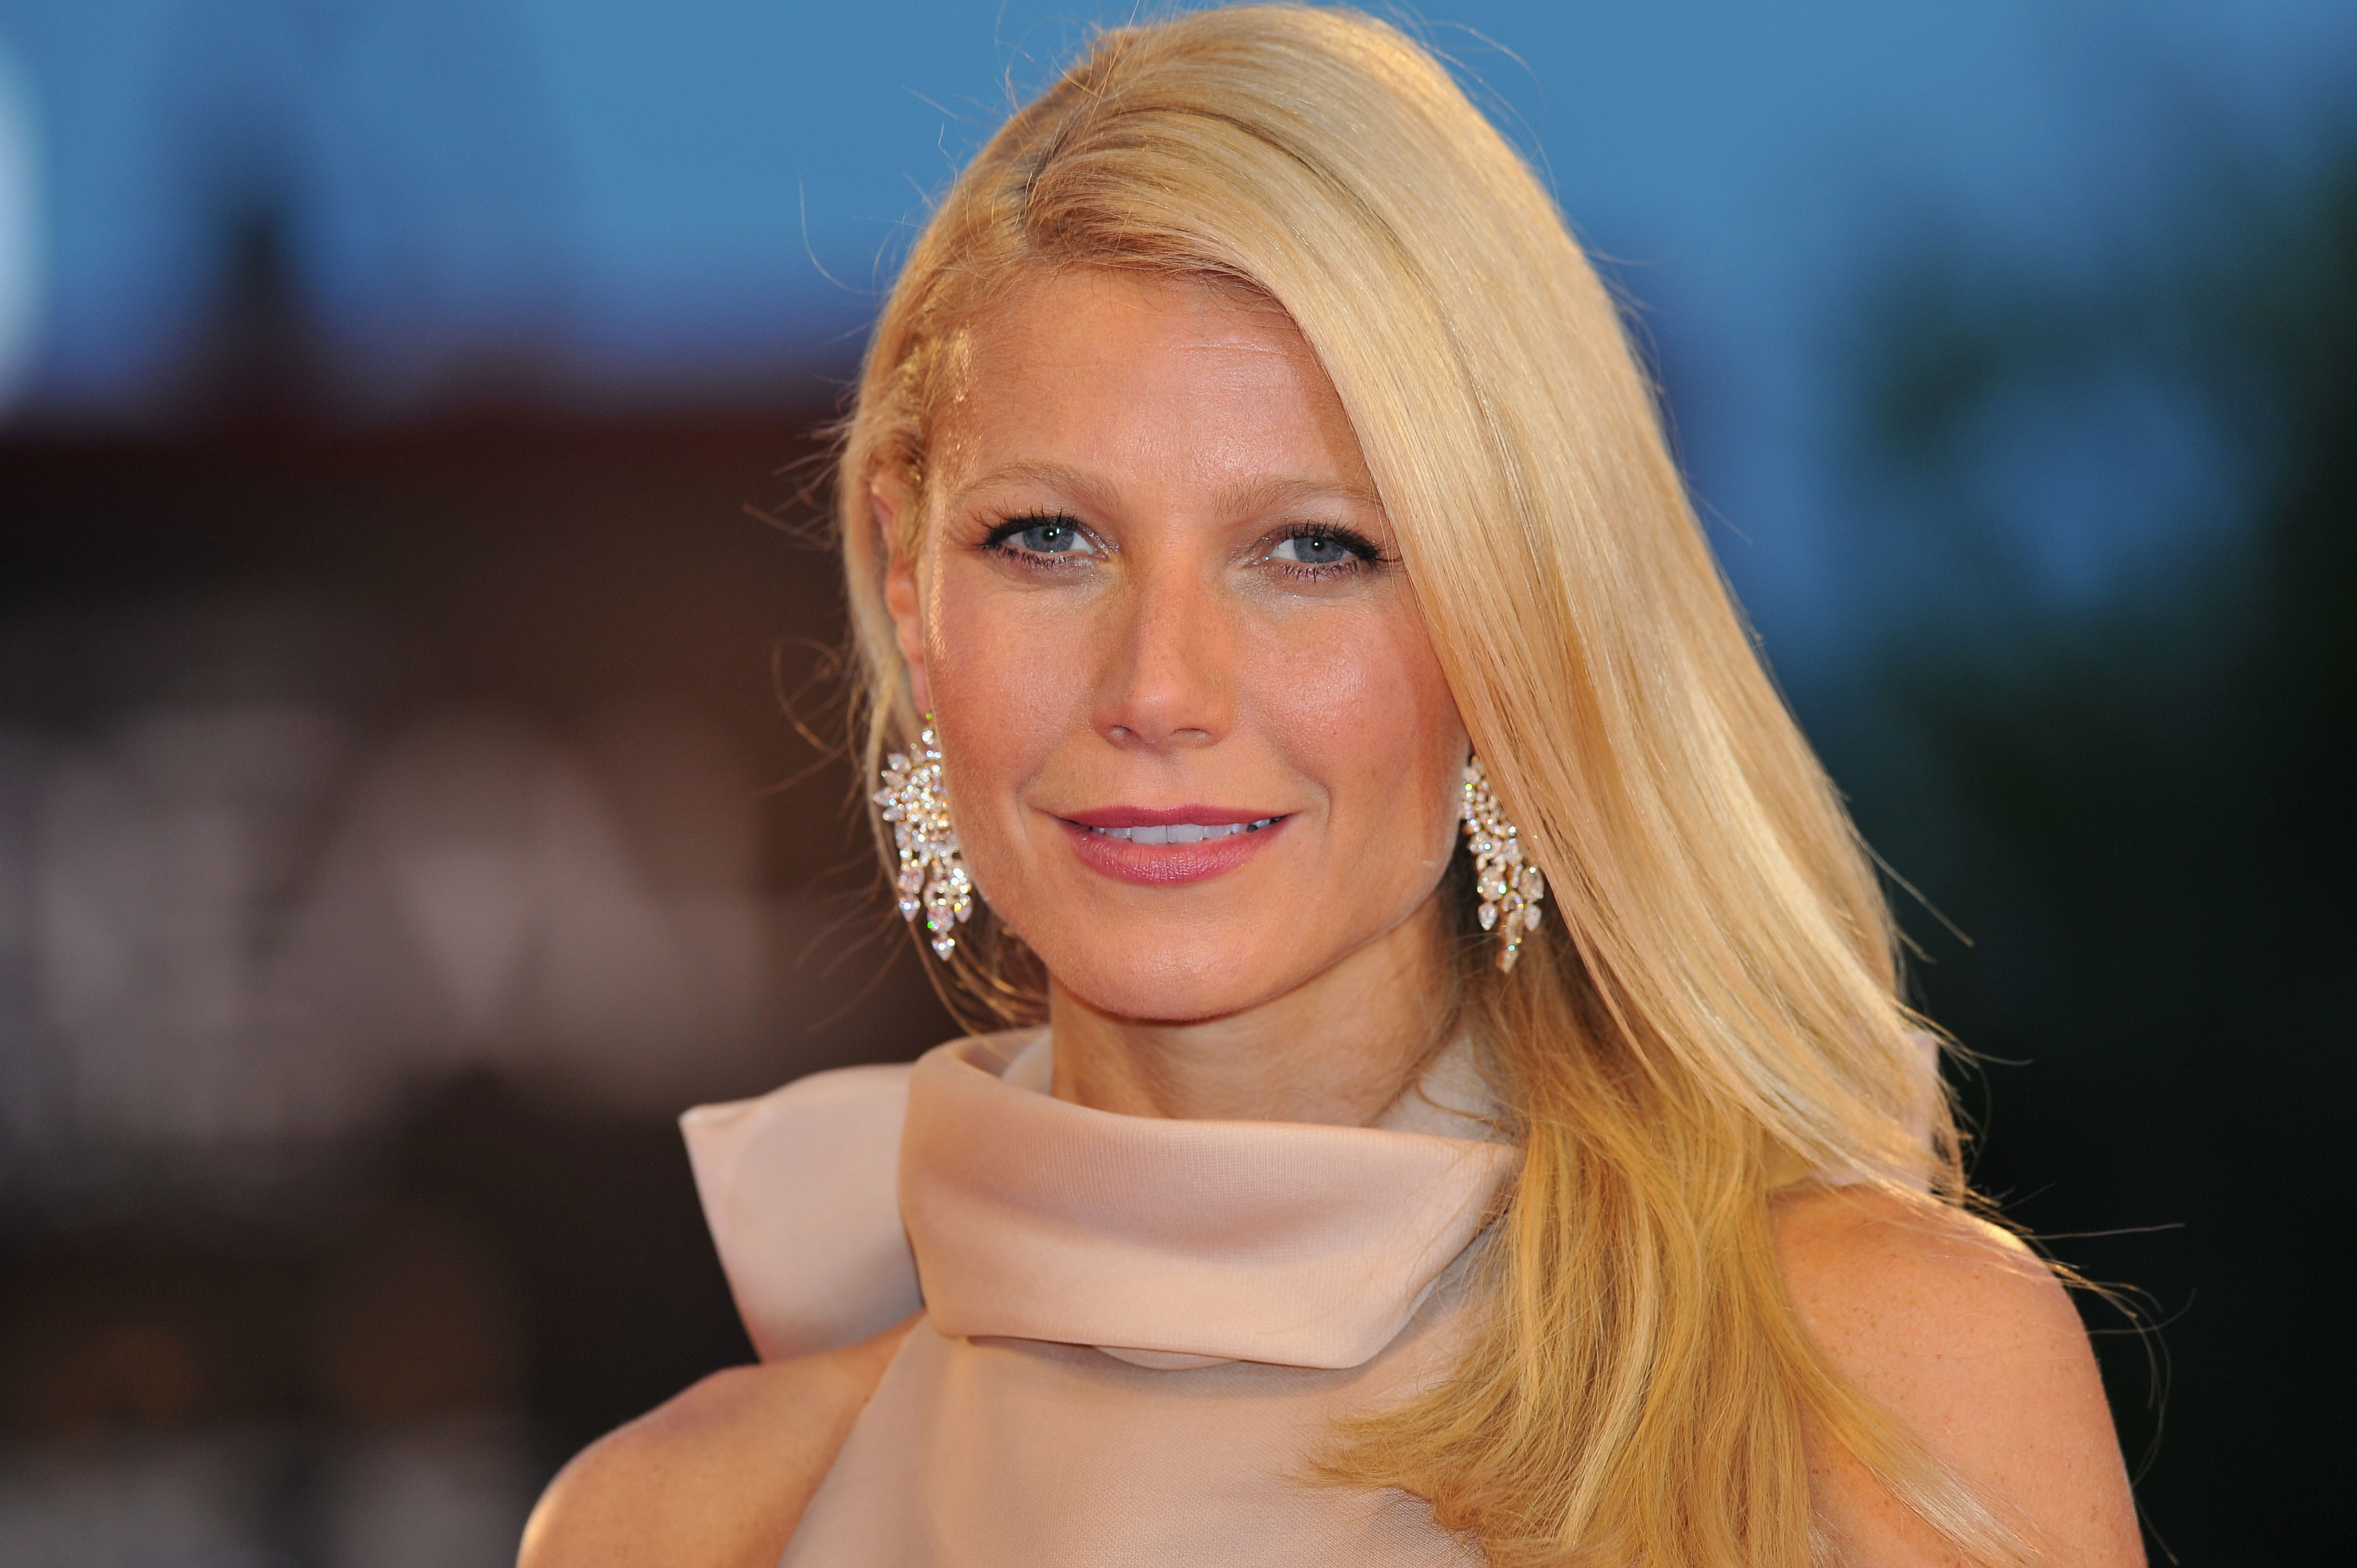 Gwyneth Paltrow Shares Rare Picture Of Daughter Apple And Everyone's Saying The Same Thing